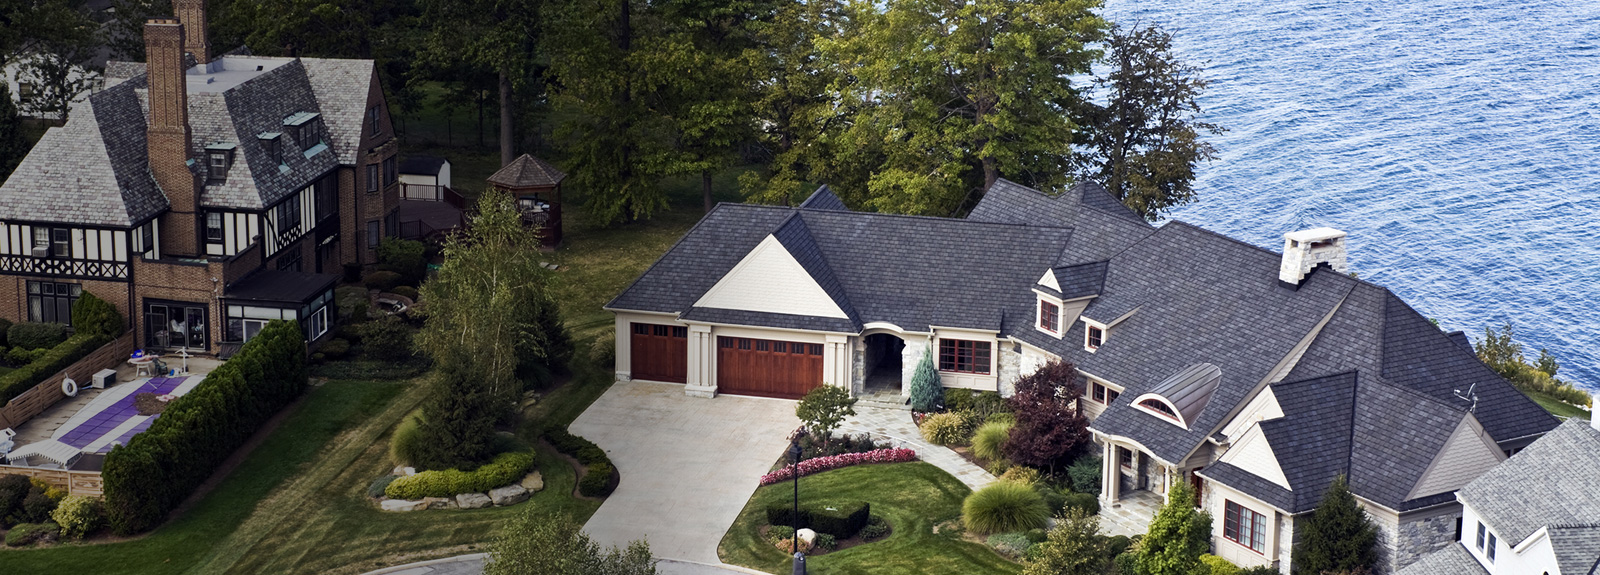 Ohio home warranty and insurance companies reviews